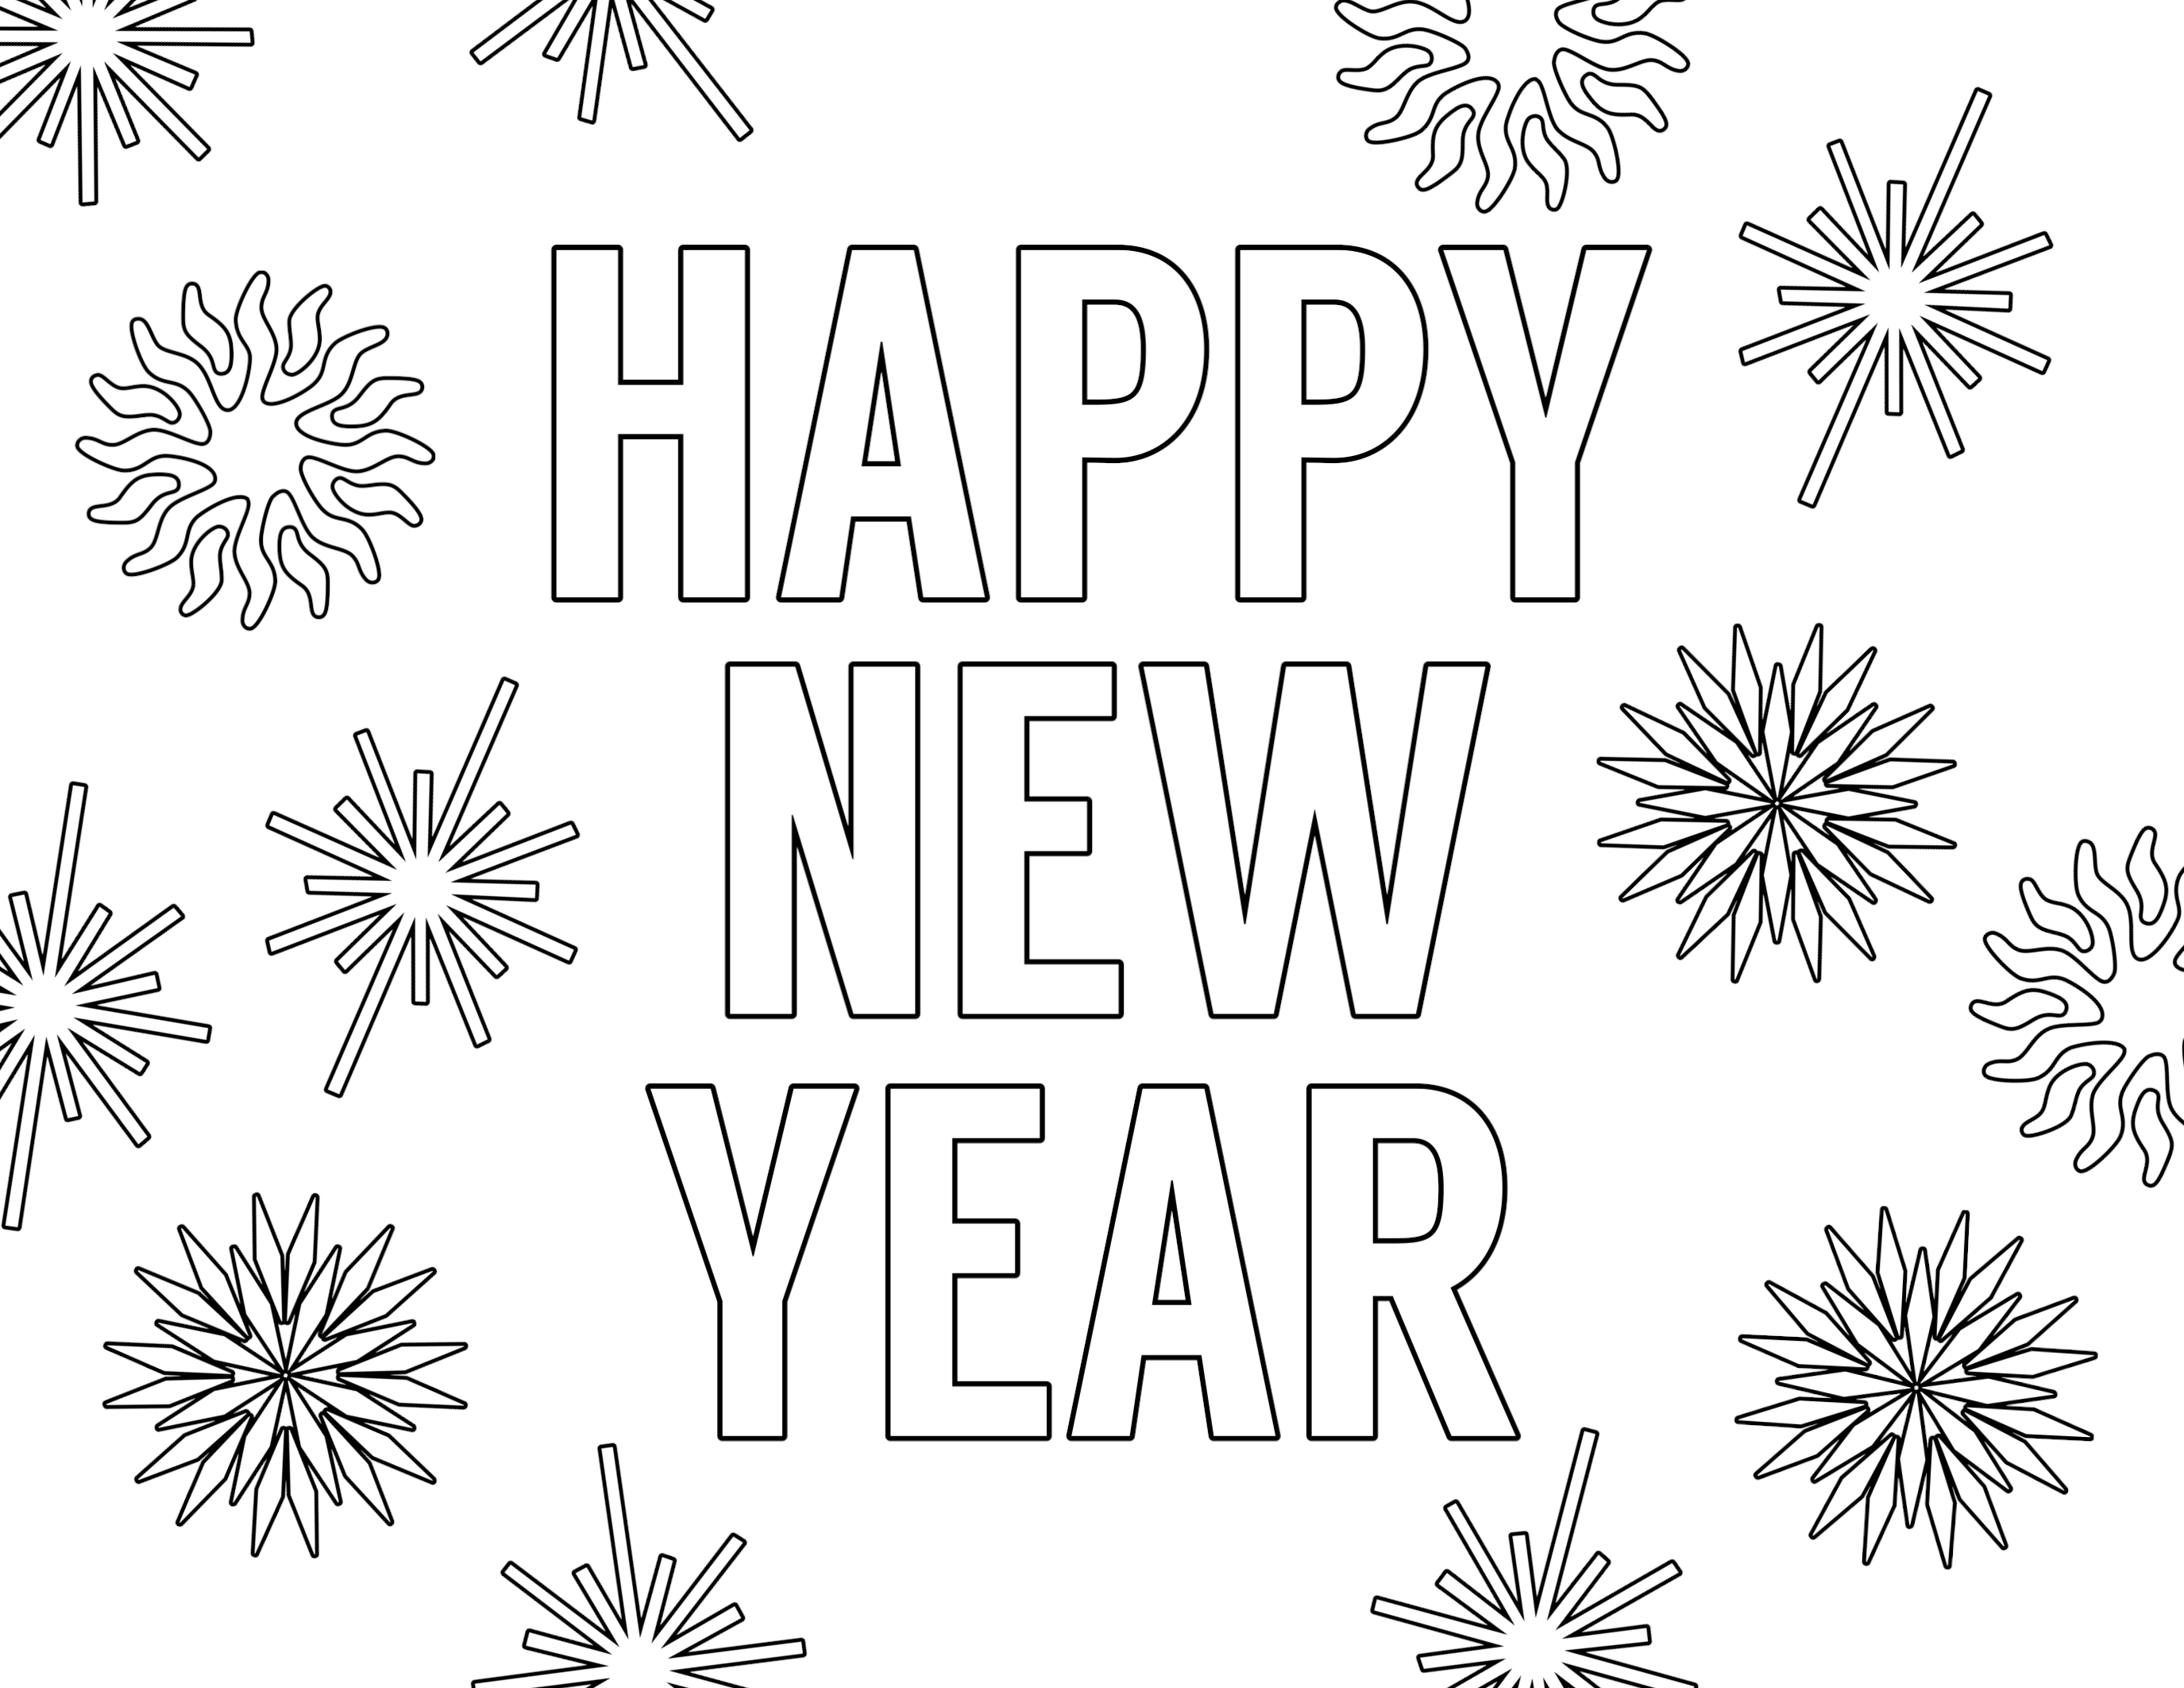 new year coloring pages free printables Happy New Year Coloring Pages Free Printable   Paper Trail Design new year coloring pages free printables